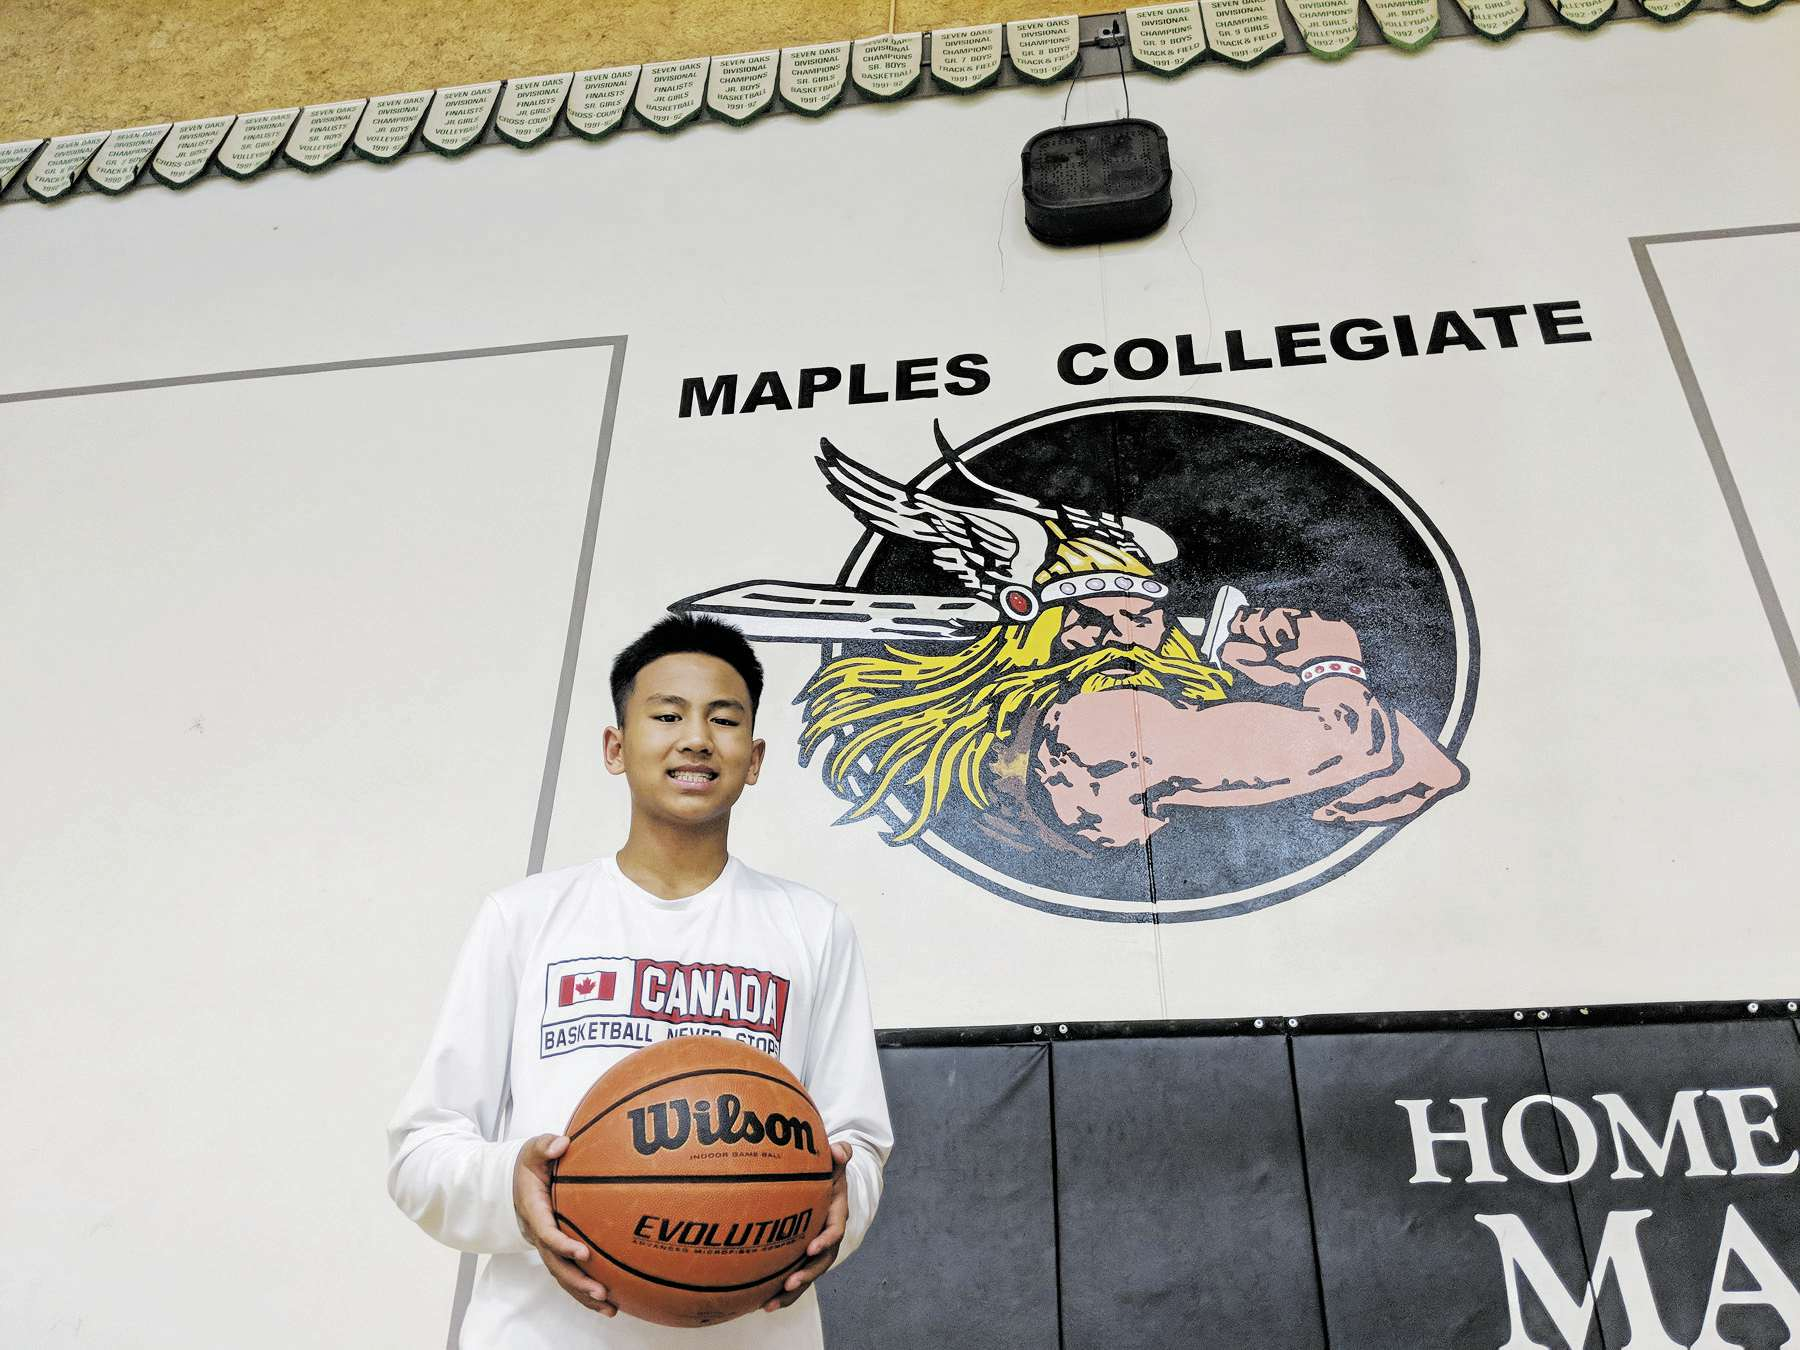 At just 14 years old, Maples Collegiate student Mekhi Lasin is one of Manitoba basketball's brightest prospects.